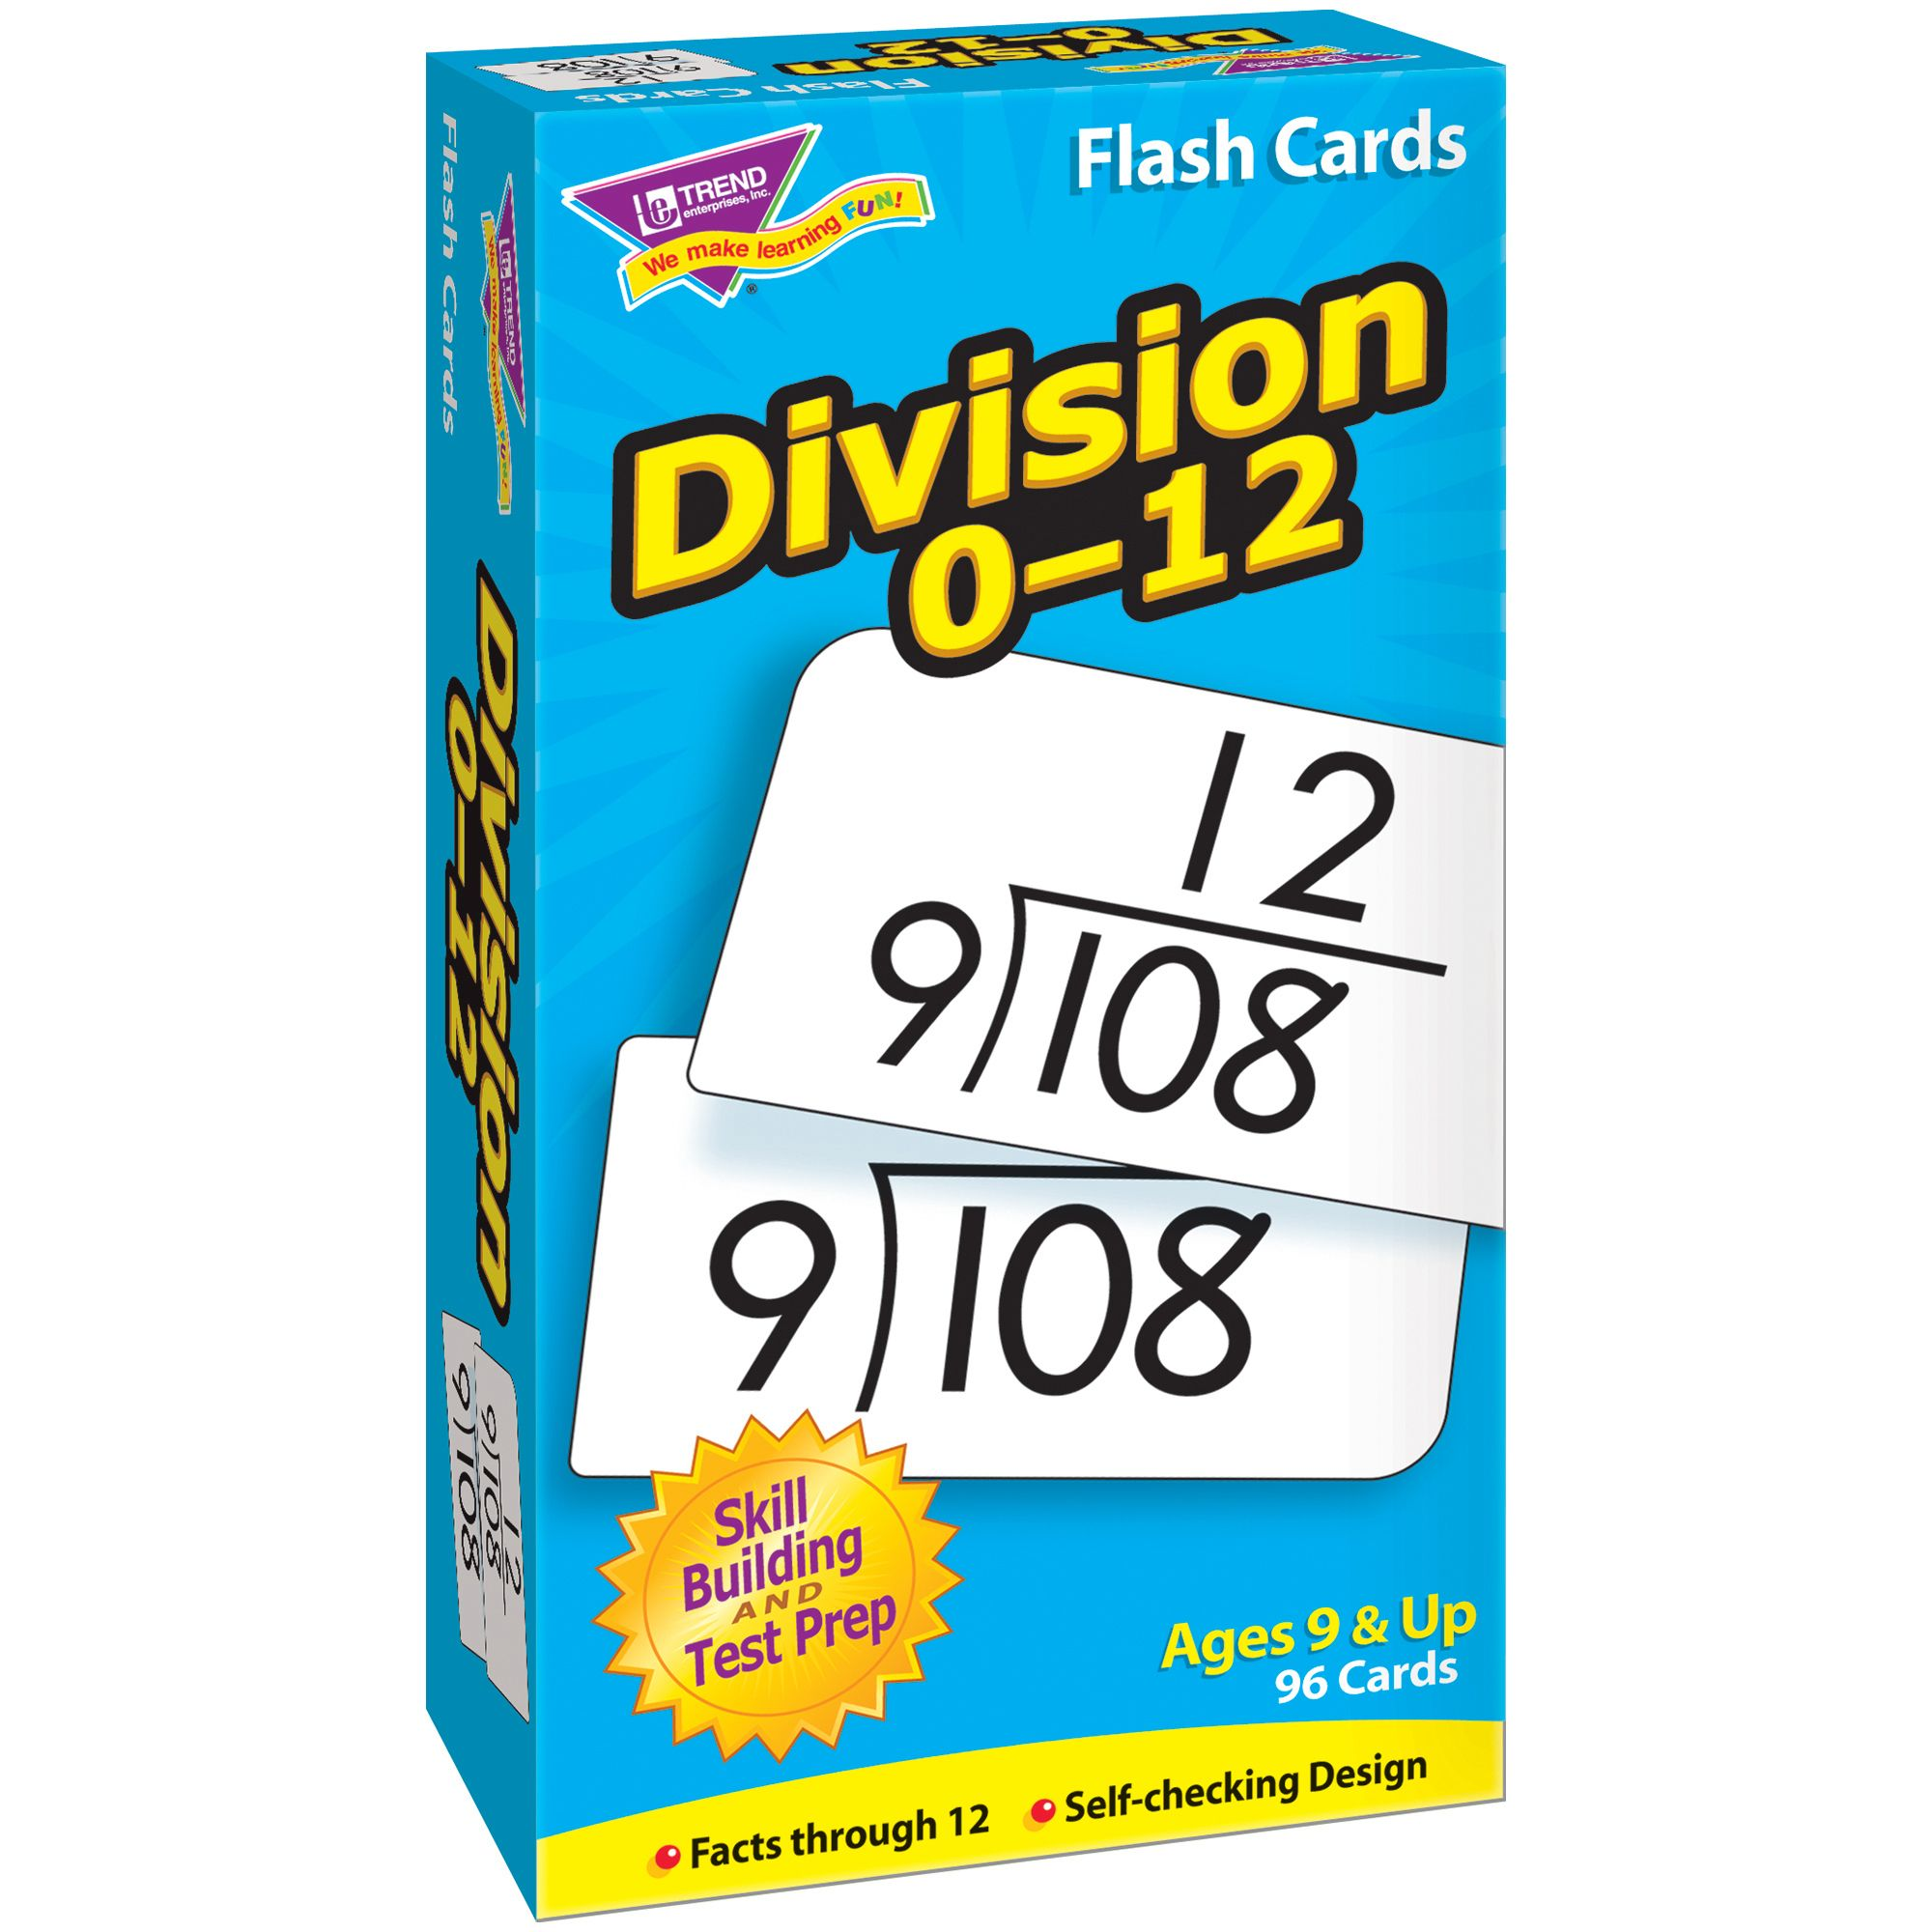 Trend Division 0 12 Skill Drill Flash Cards 3 Packs